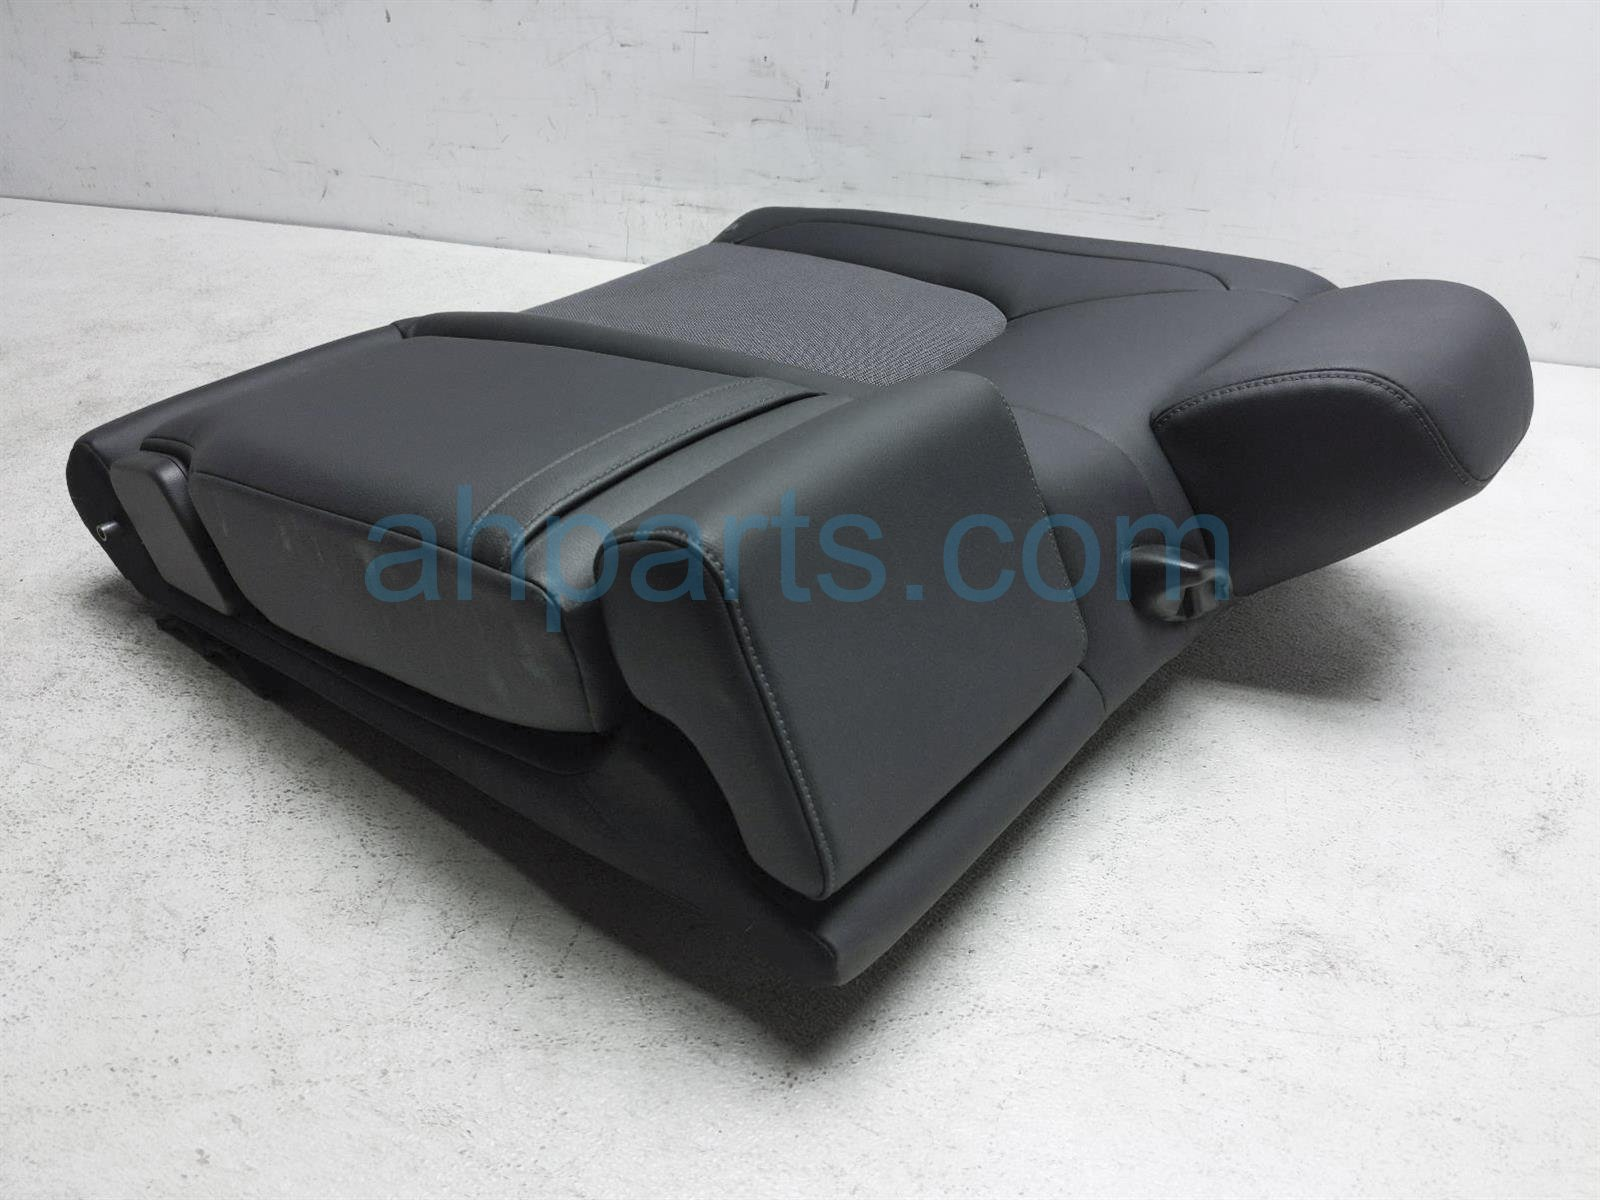 2018 Honda Clarity Back (2nd Row) Rear Passenger Seat Top Cushion   Black 82121 TRW A11ZB Replacement